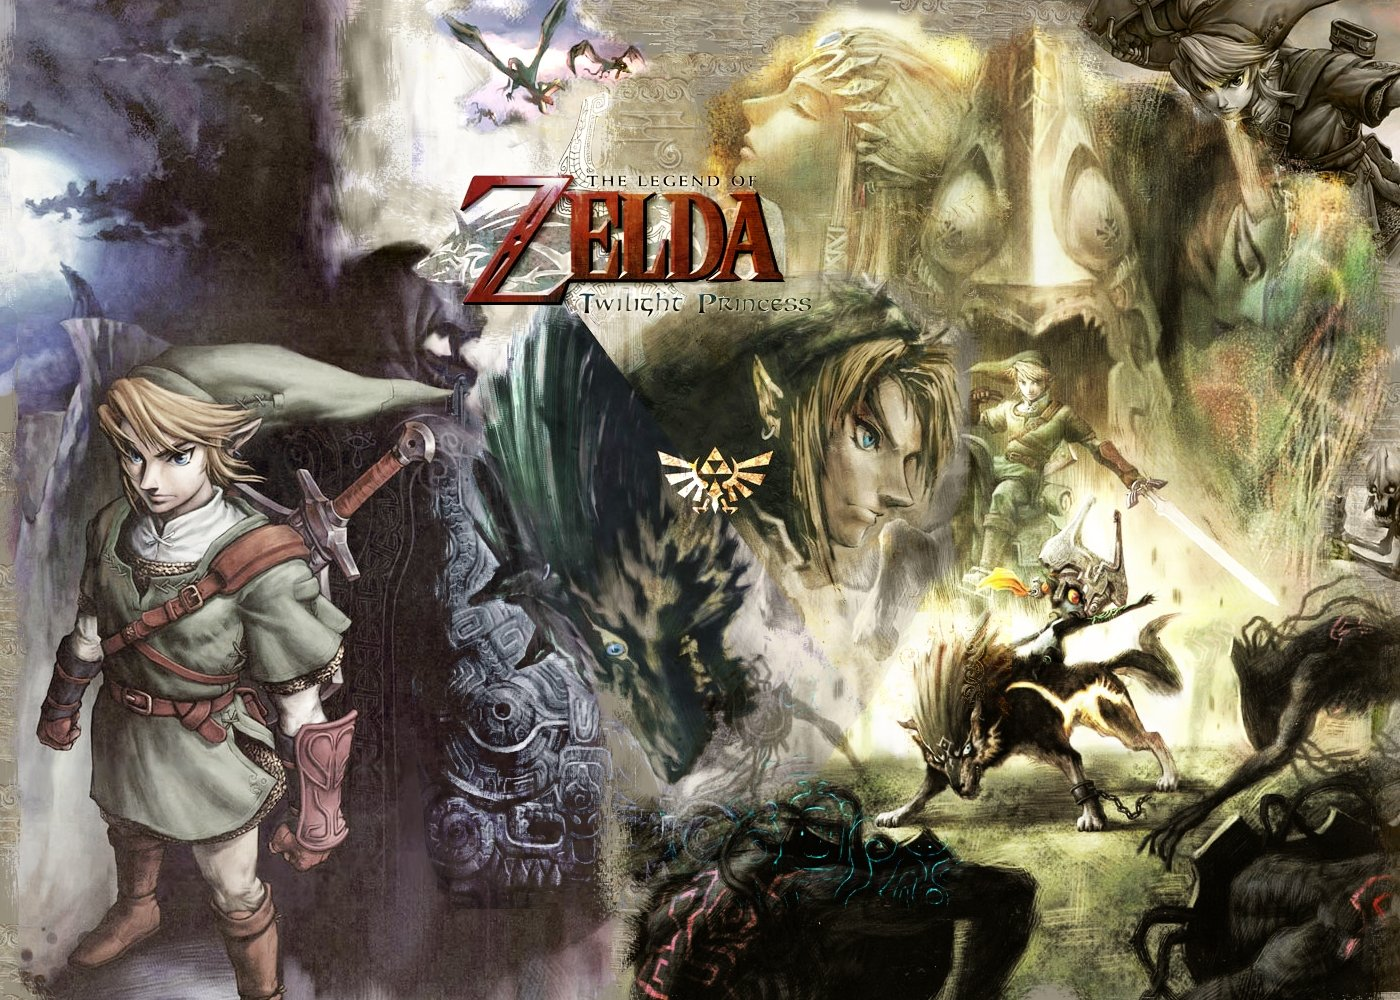 Twilight Princess Wallpapers   The Legend of Zelda 1400x1000